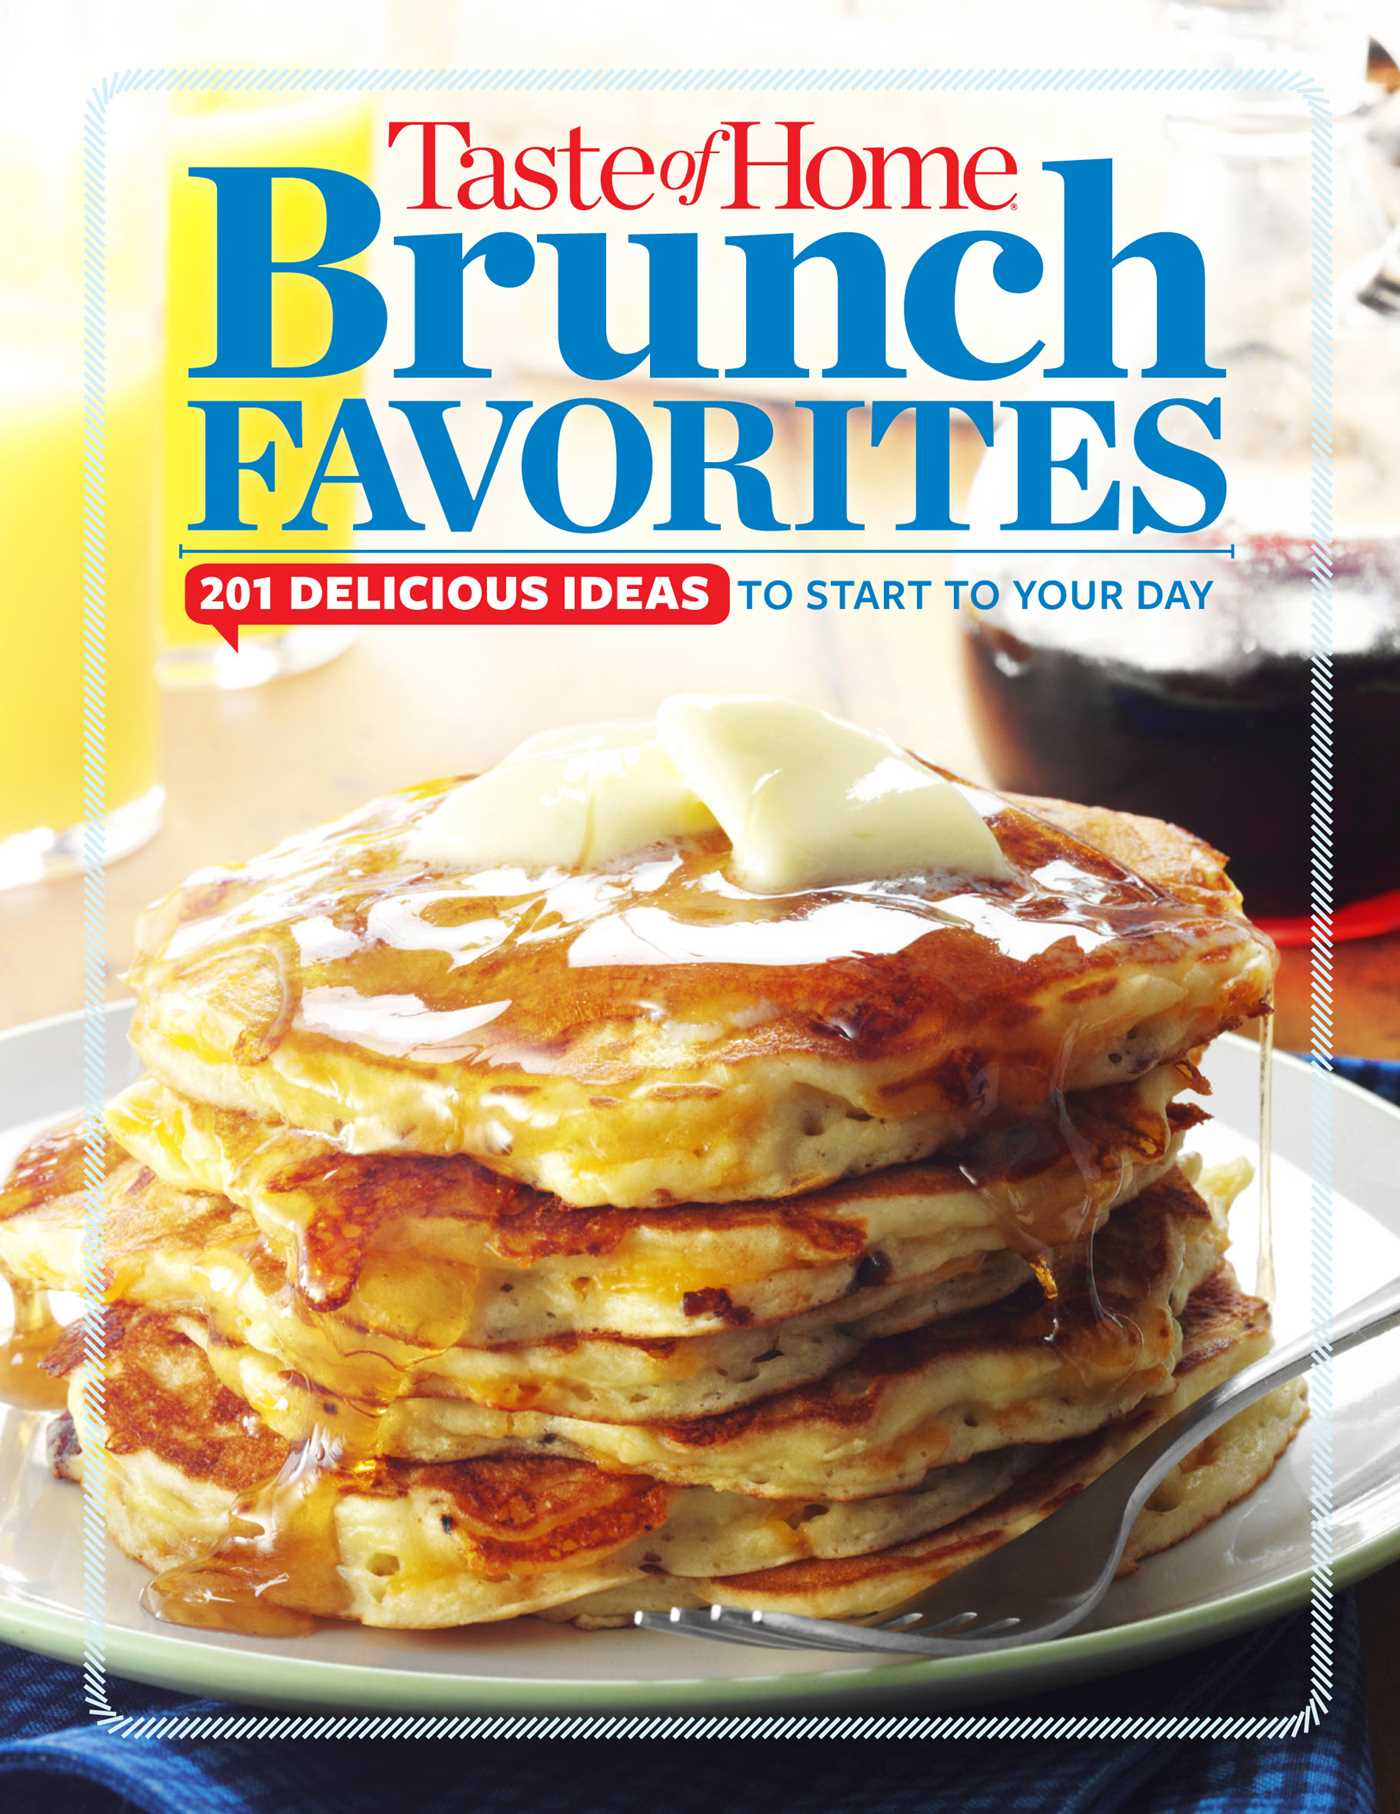 Taste-of-home-brunch-favorites-9781617653650_hr